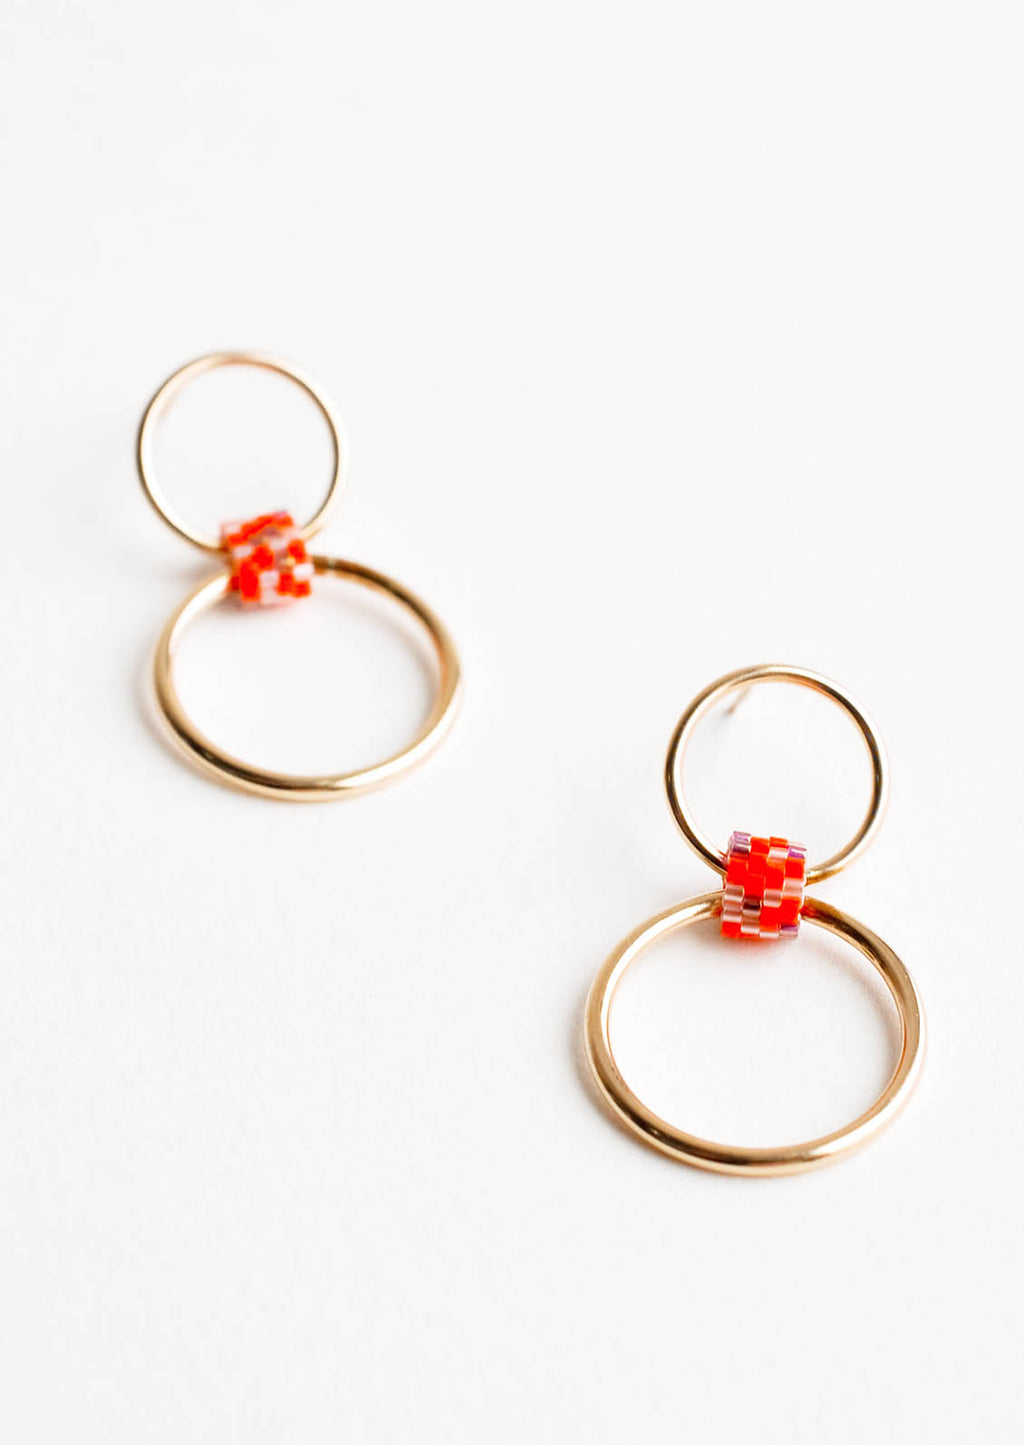 Orange Multi: Post back earrings of one small gold hoop and one larger gold hoop connected by a loop of orange glass beads.